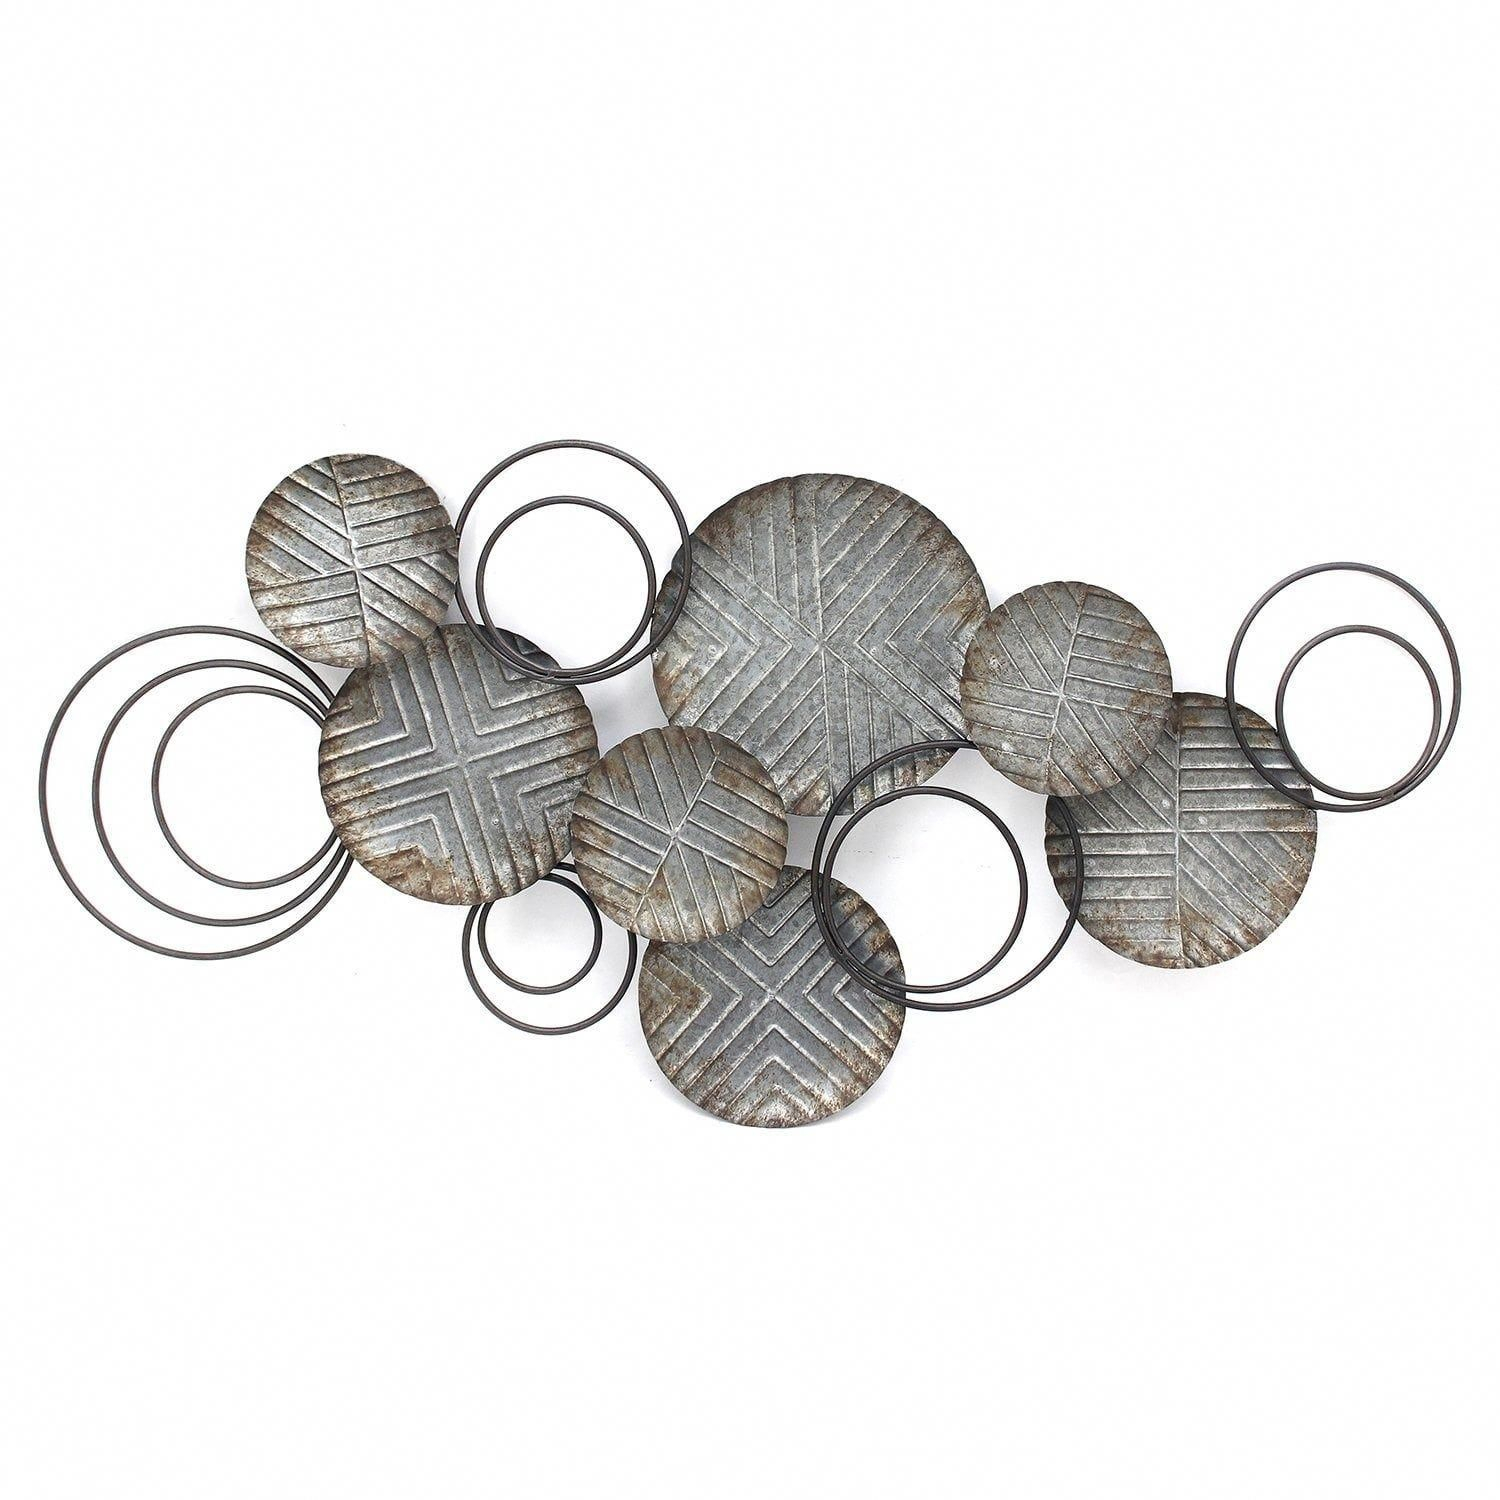 Stratton Home Decor Galvanized Plates Wall Decor, Silver Pertaining To Scattered Metal Italian Plates Wall Decor (View 19 of 30)